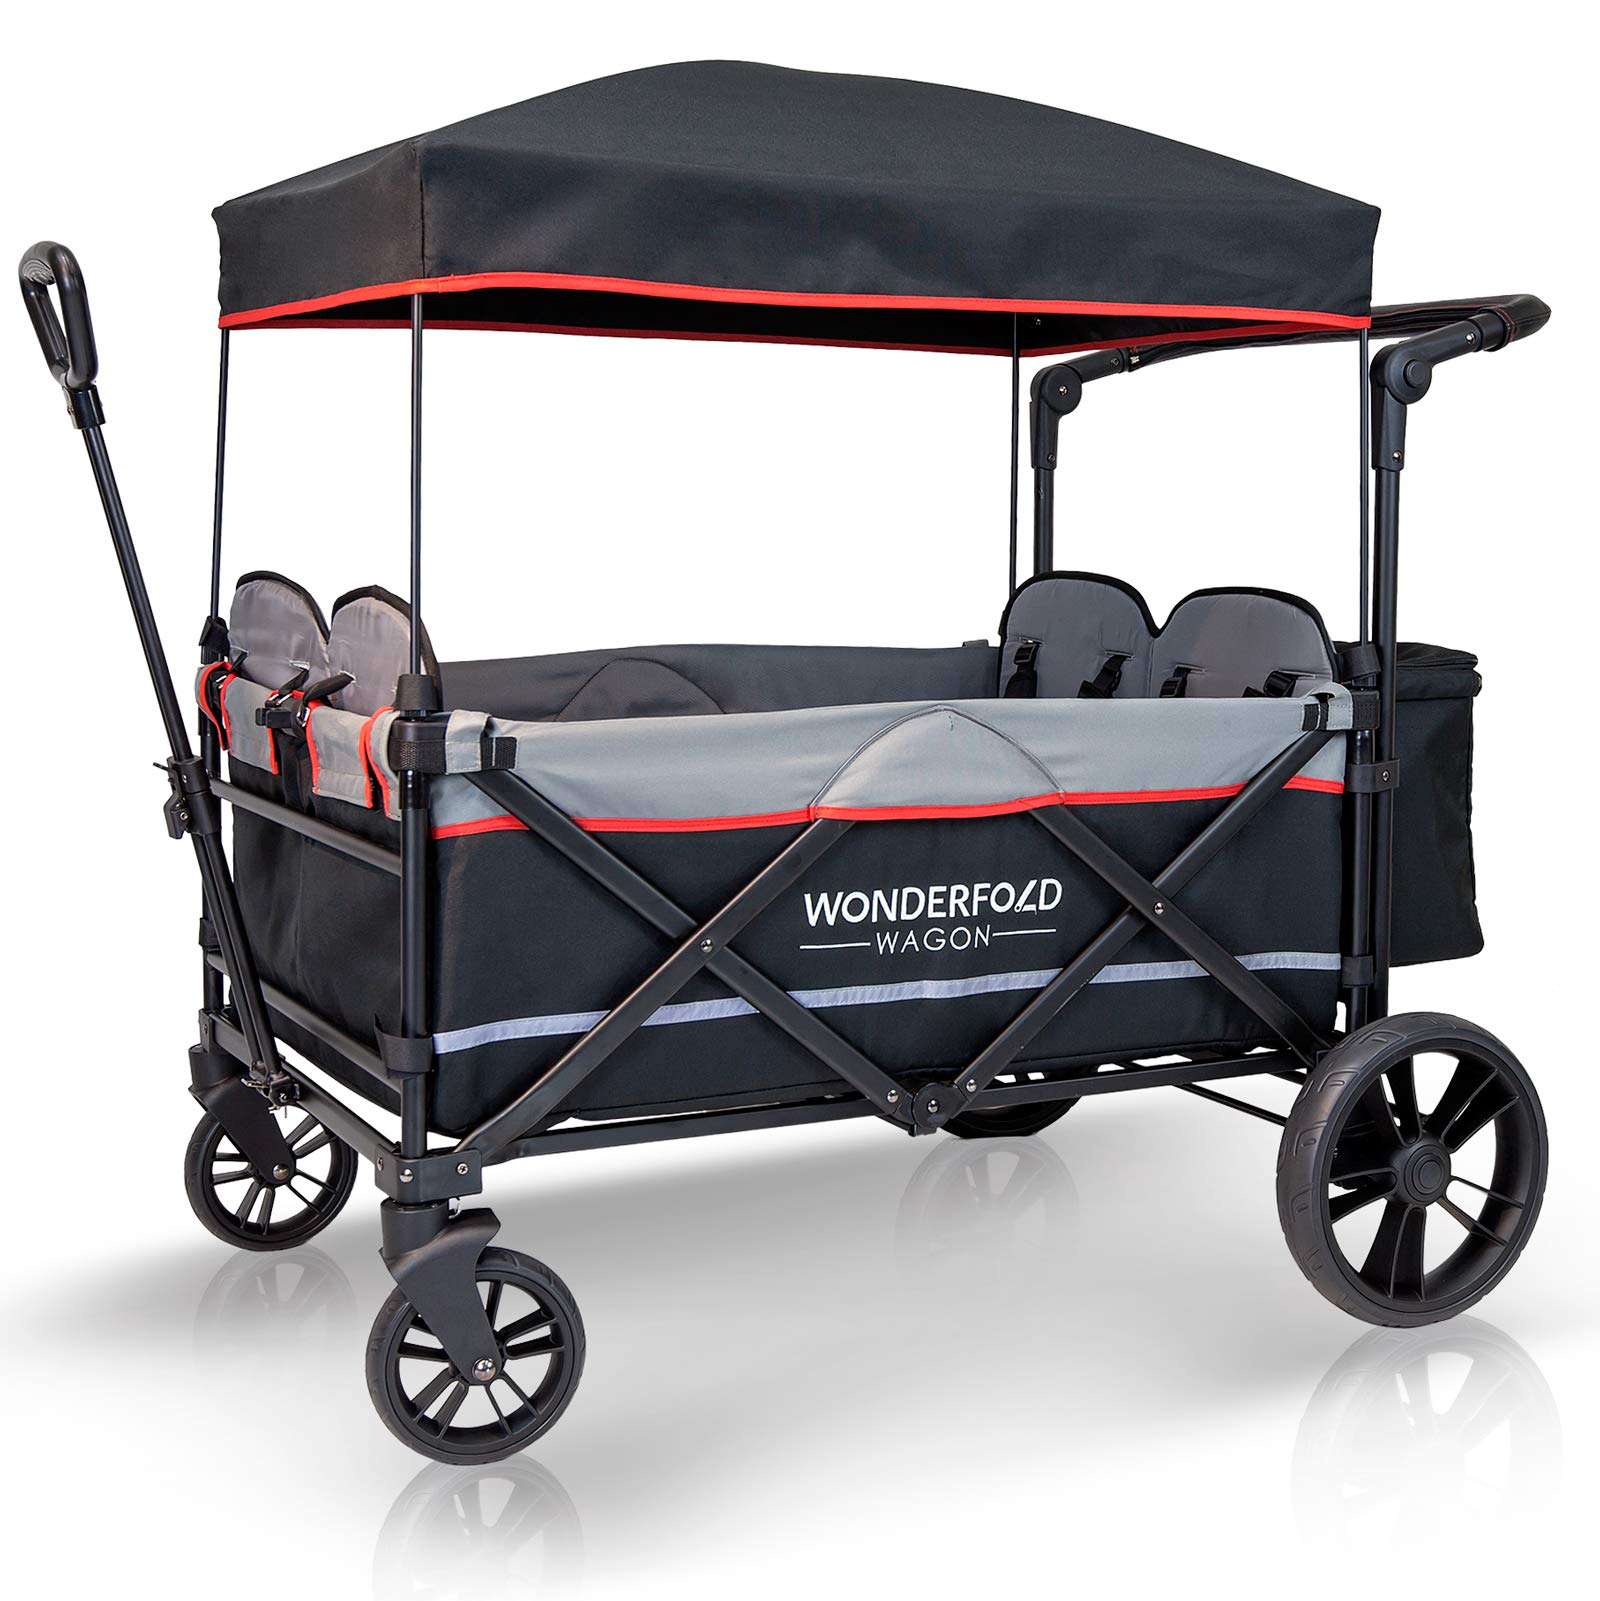 WonderFold Baby XXL 4-Passenger Pull/Push Quad Stroller Wagon with Adjustable Handle Bar, Removable Canopy, Safety Seats with 5-Point Harness, One-Step Foot Brake (Black) by WonderFold Baby